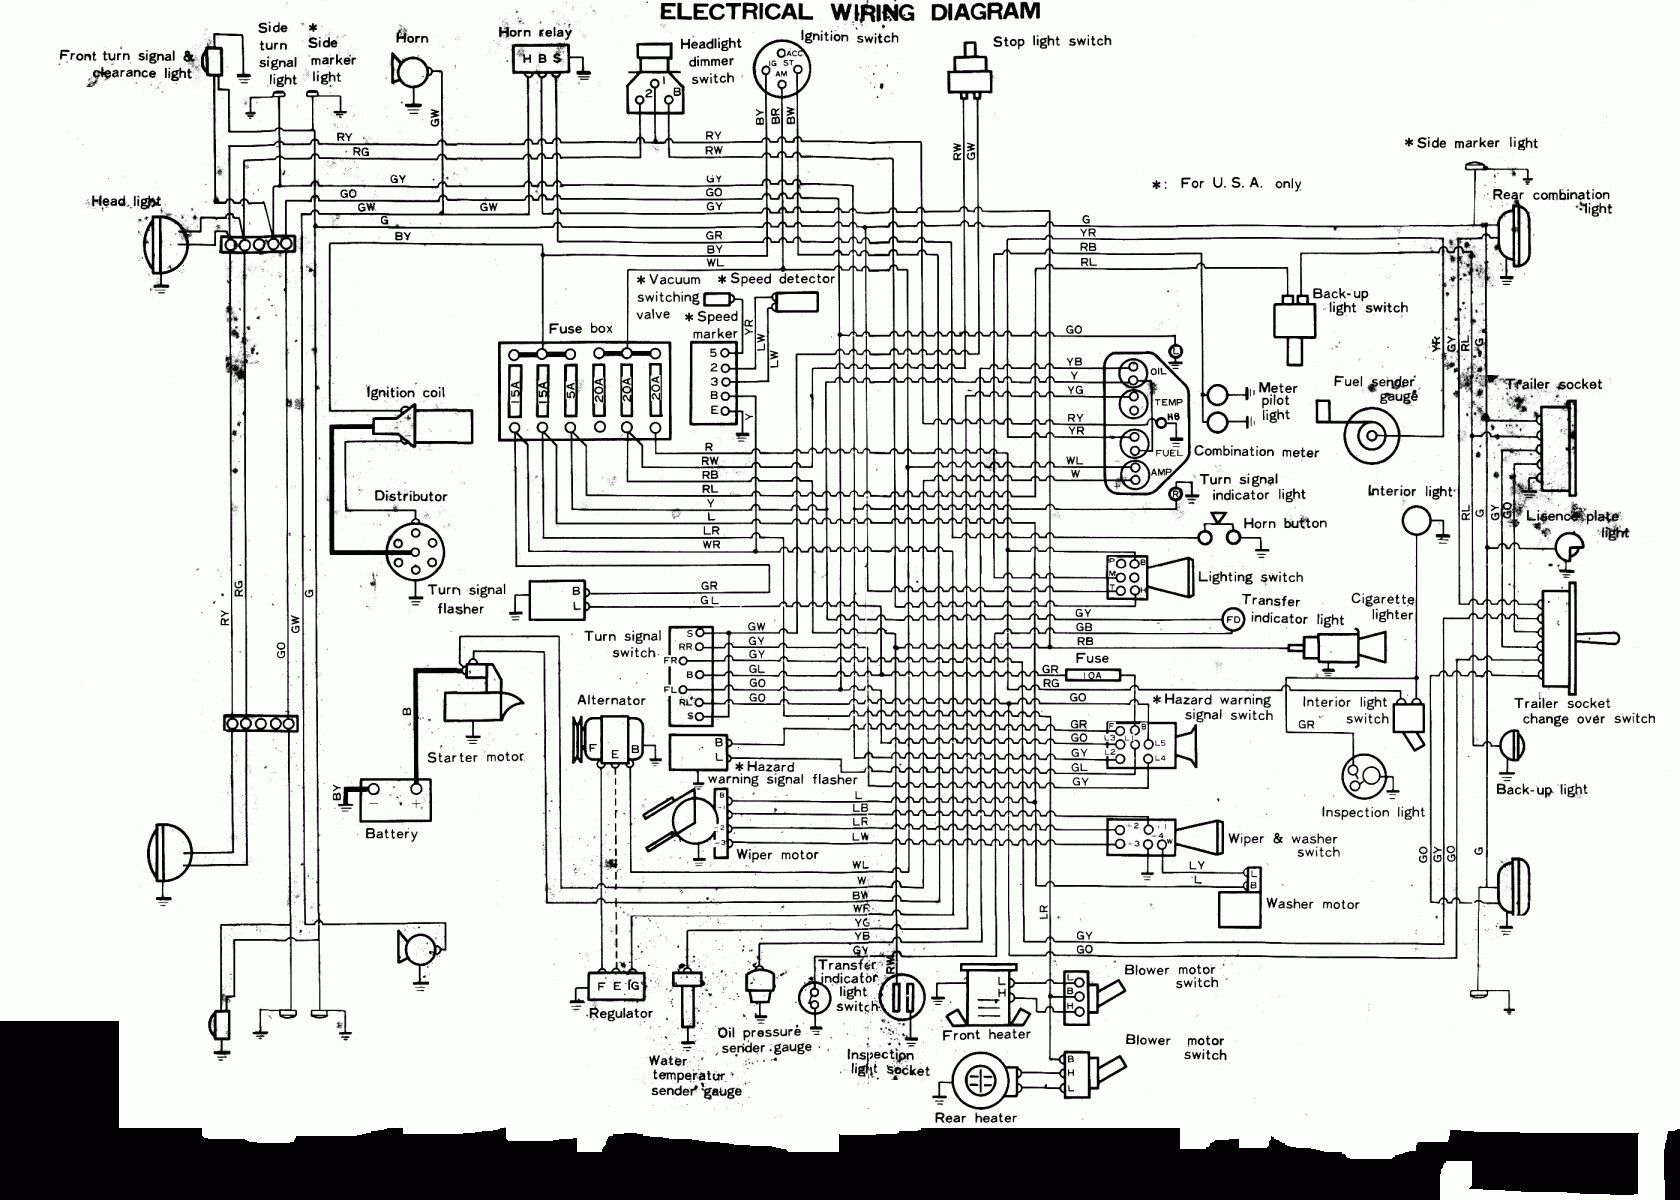 Toyota 86120 Pdf In 2020 Electrical Wiring Diagram Electrical Diagram Electrical Wiring